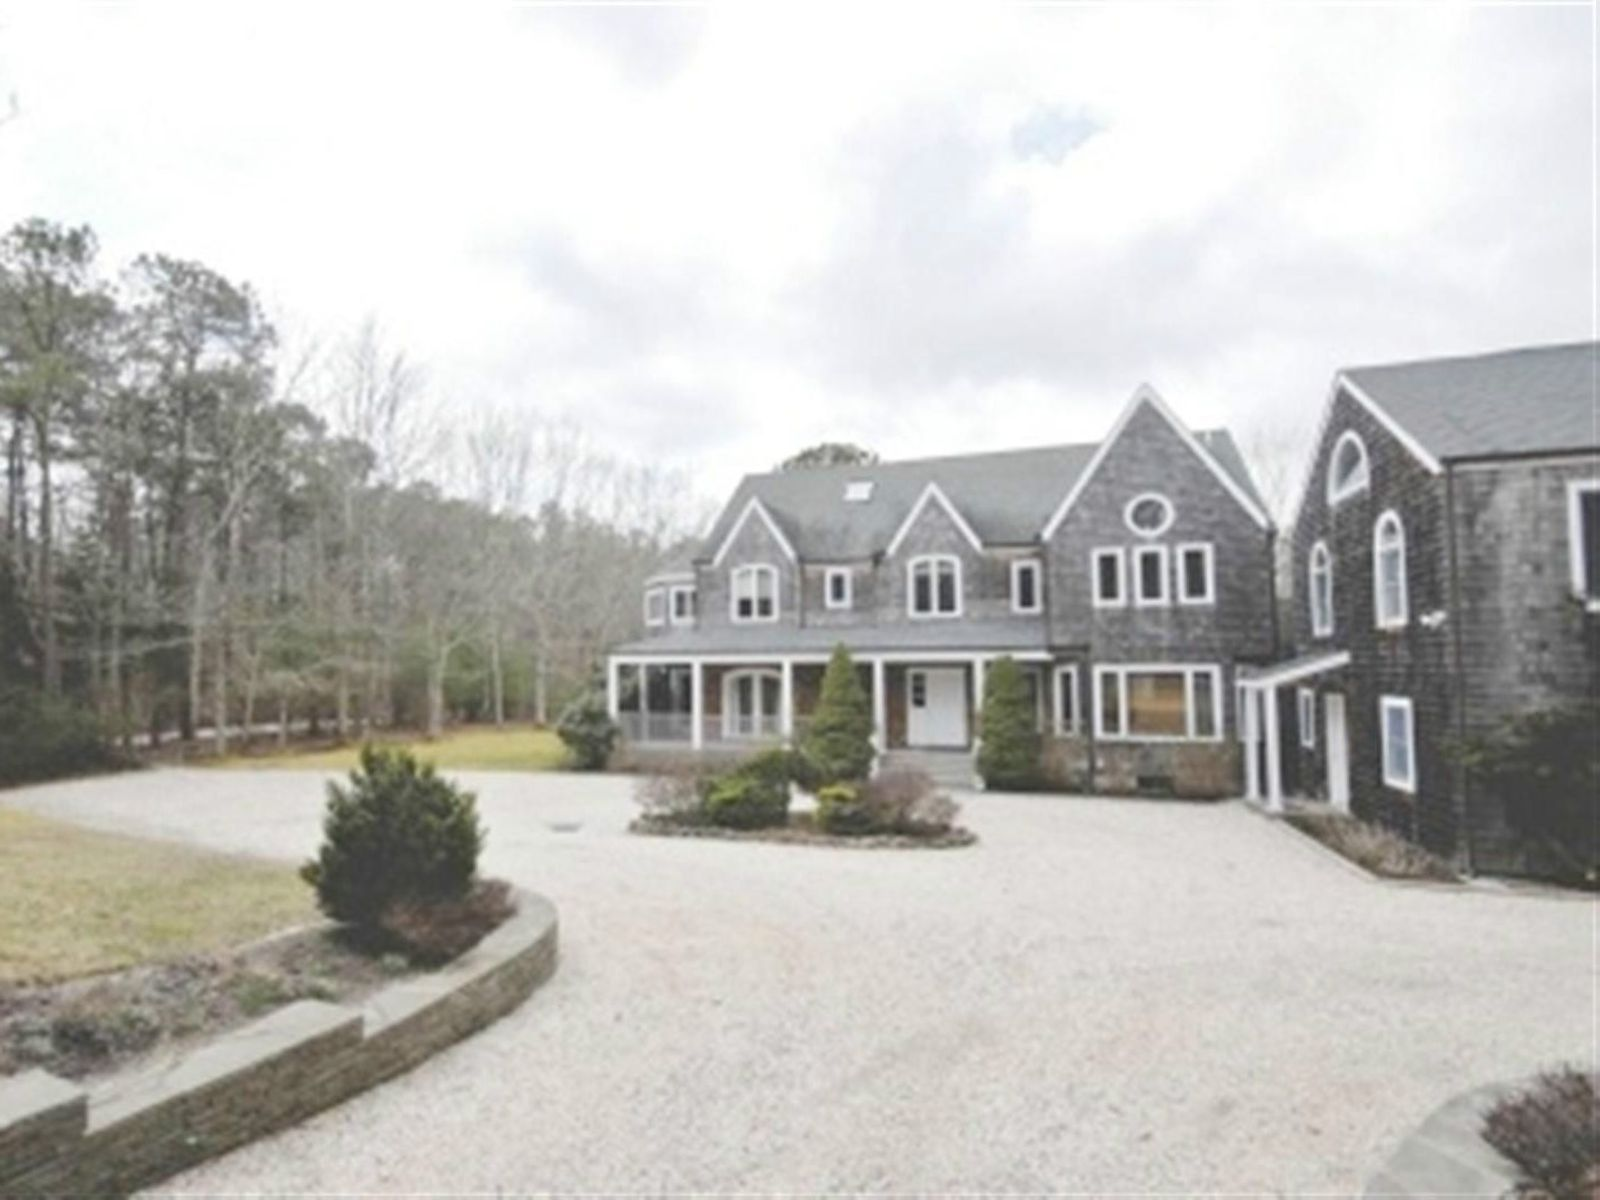 Spacious & Private Water Mill Home, Water Mill NY Single Family Home - Hamptons Real Estate